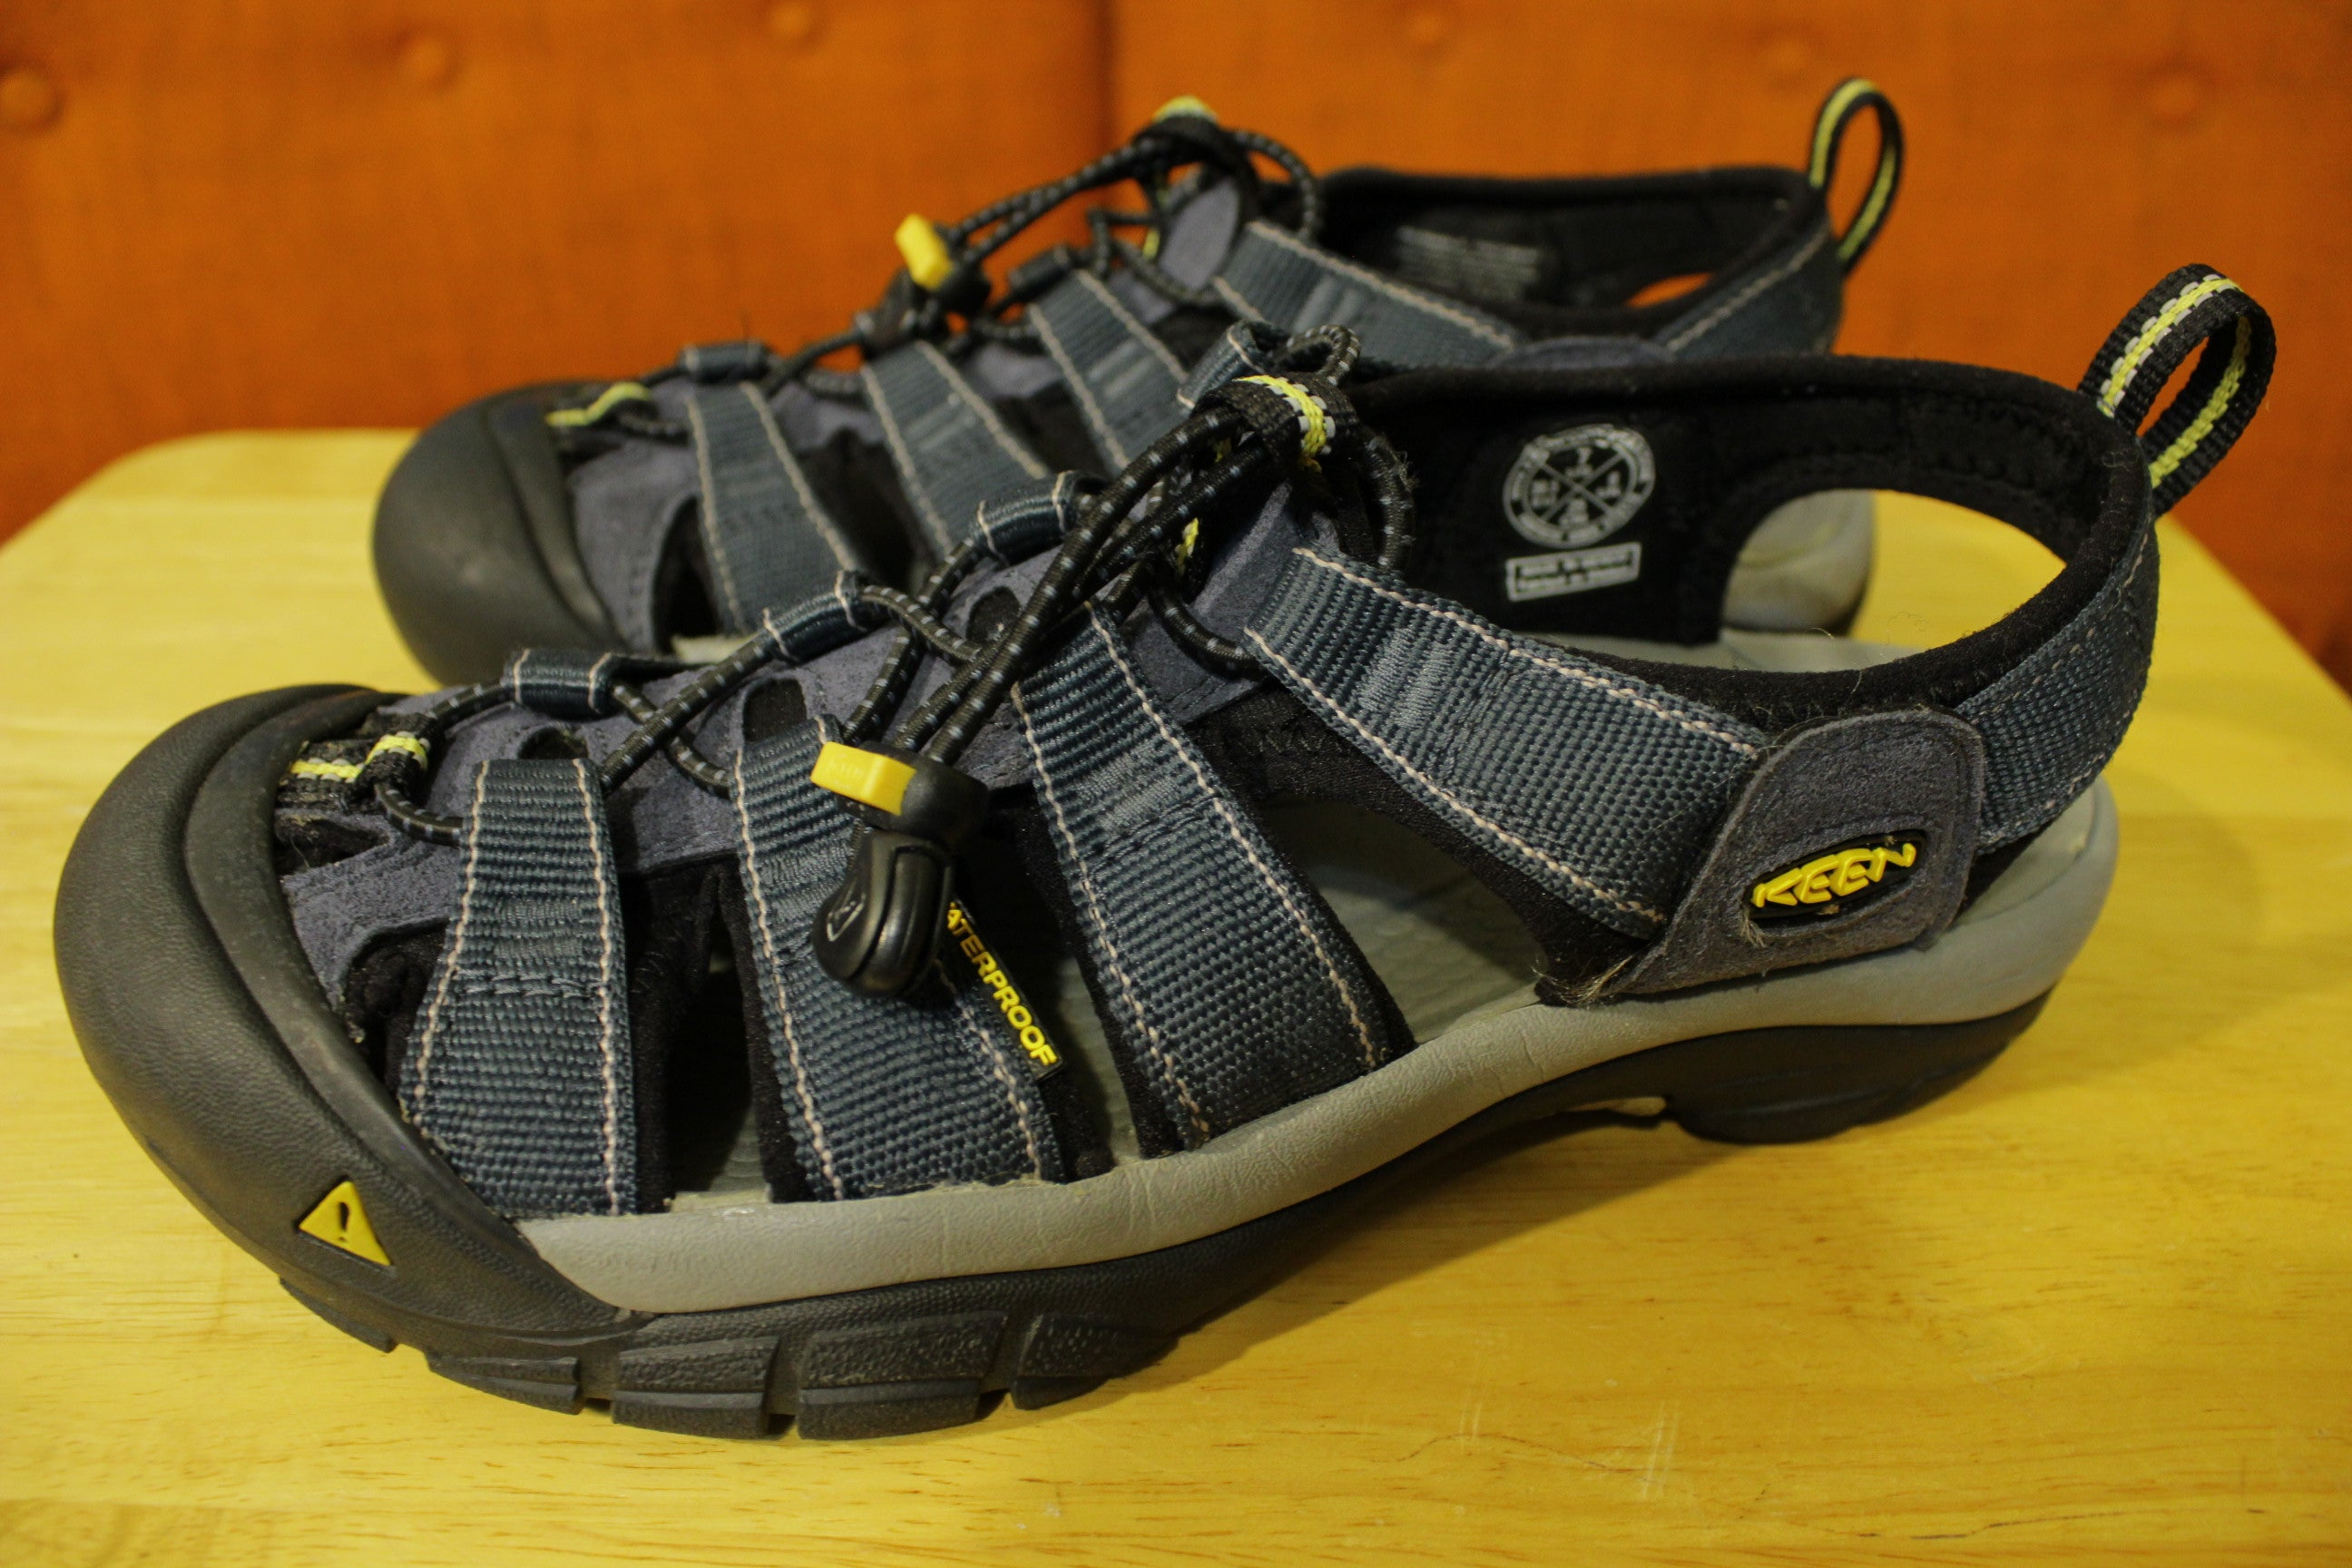 3e64c2fda1f4c9 Keen Newport H2 Hiking Water Outdoor Sandal Strap Shoes Navy Gray Mens Size  7